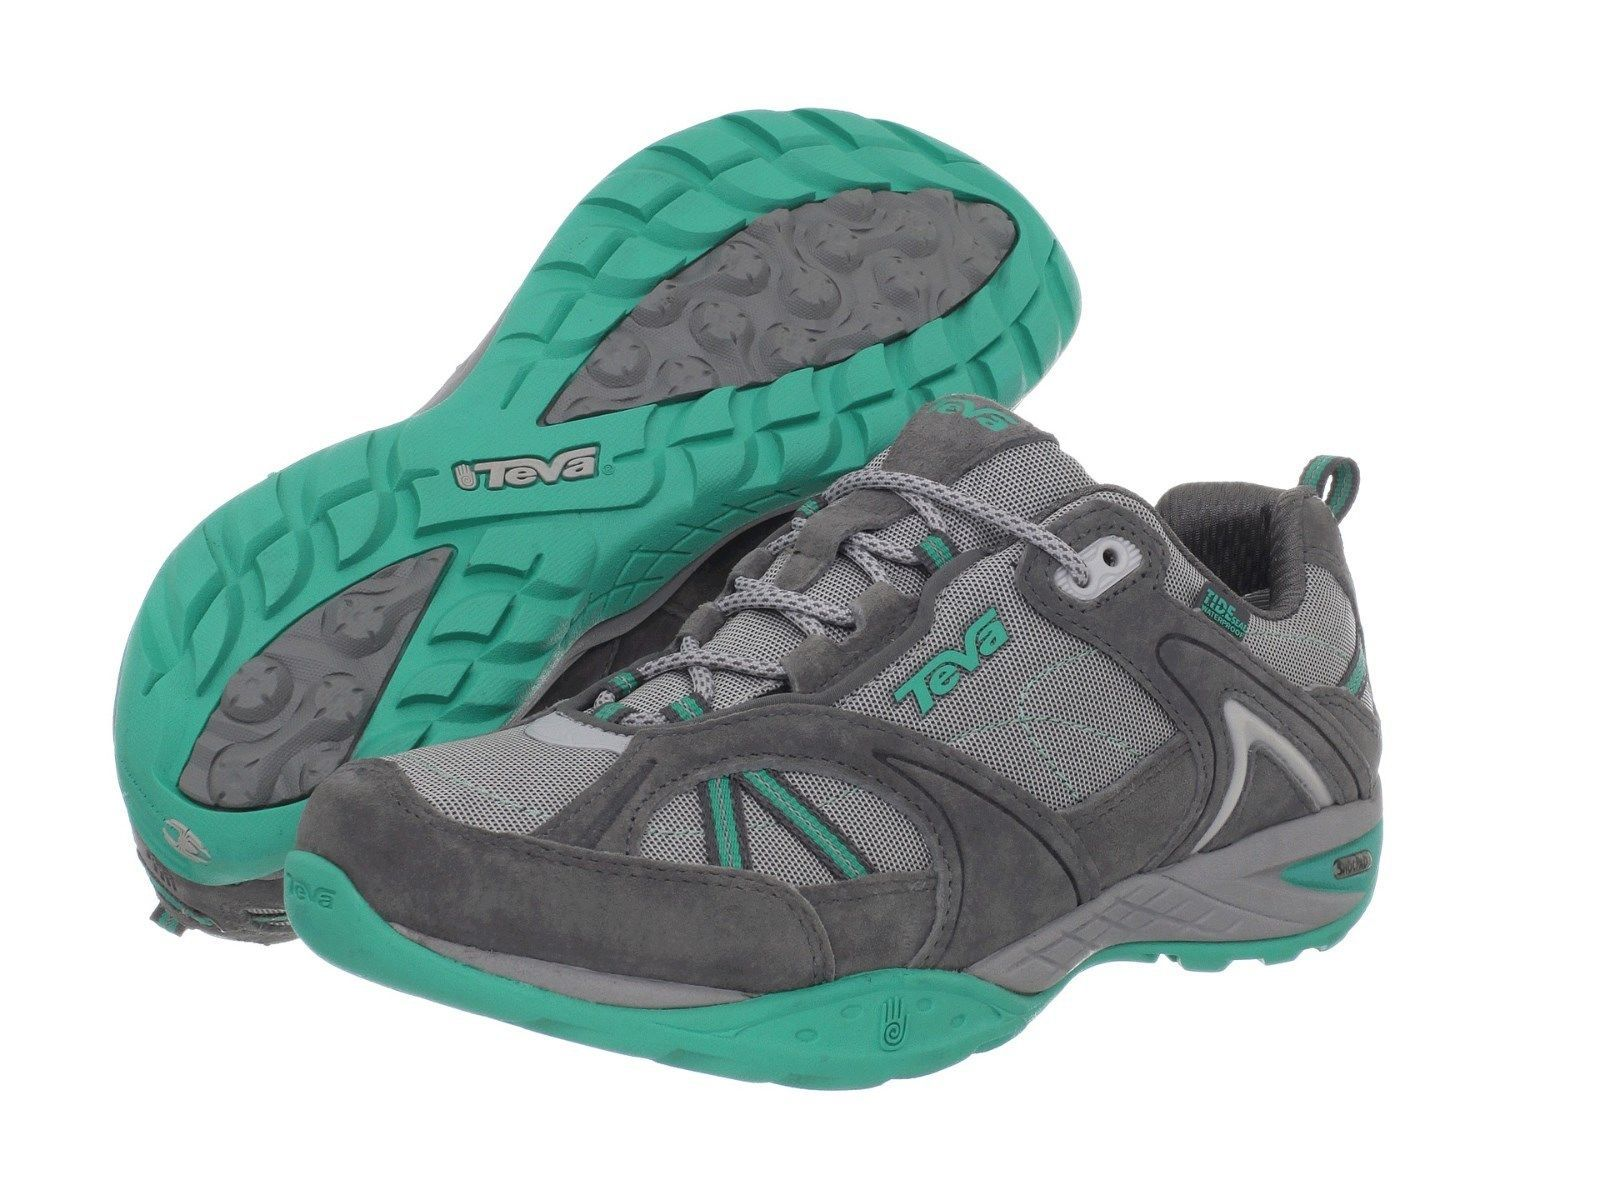 1be79447729 Details about KEEN Targhee II 2 Low WP Waterproof Hiking Trail Shoes ...